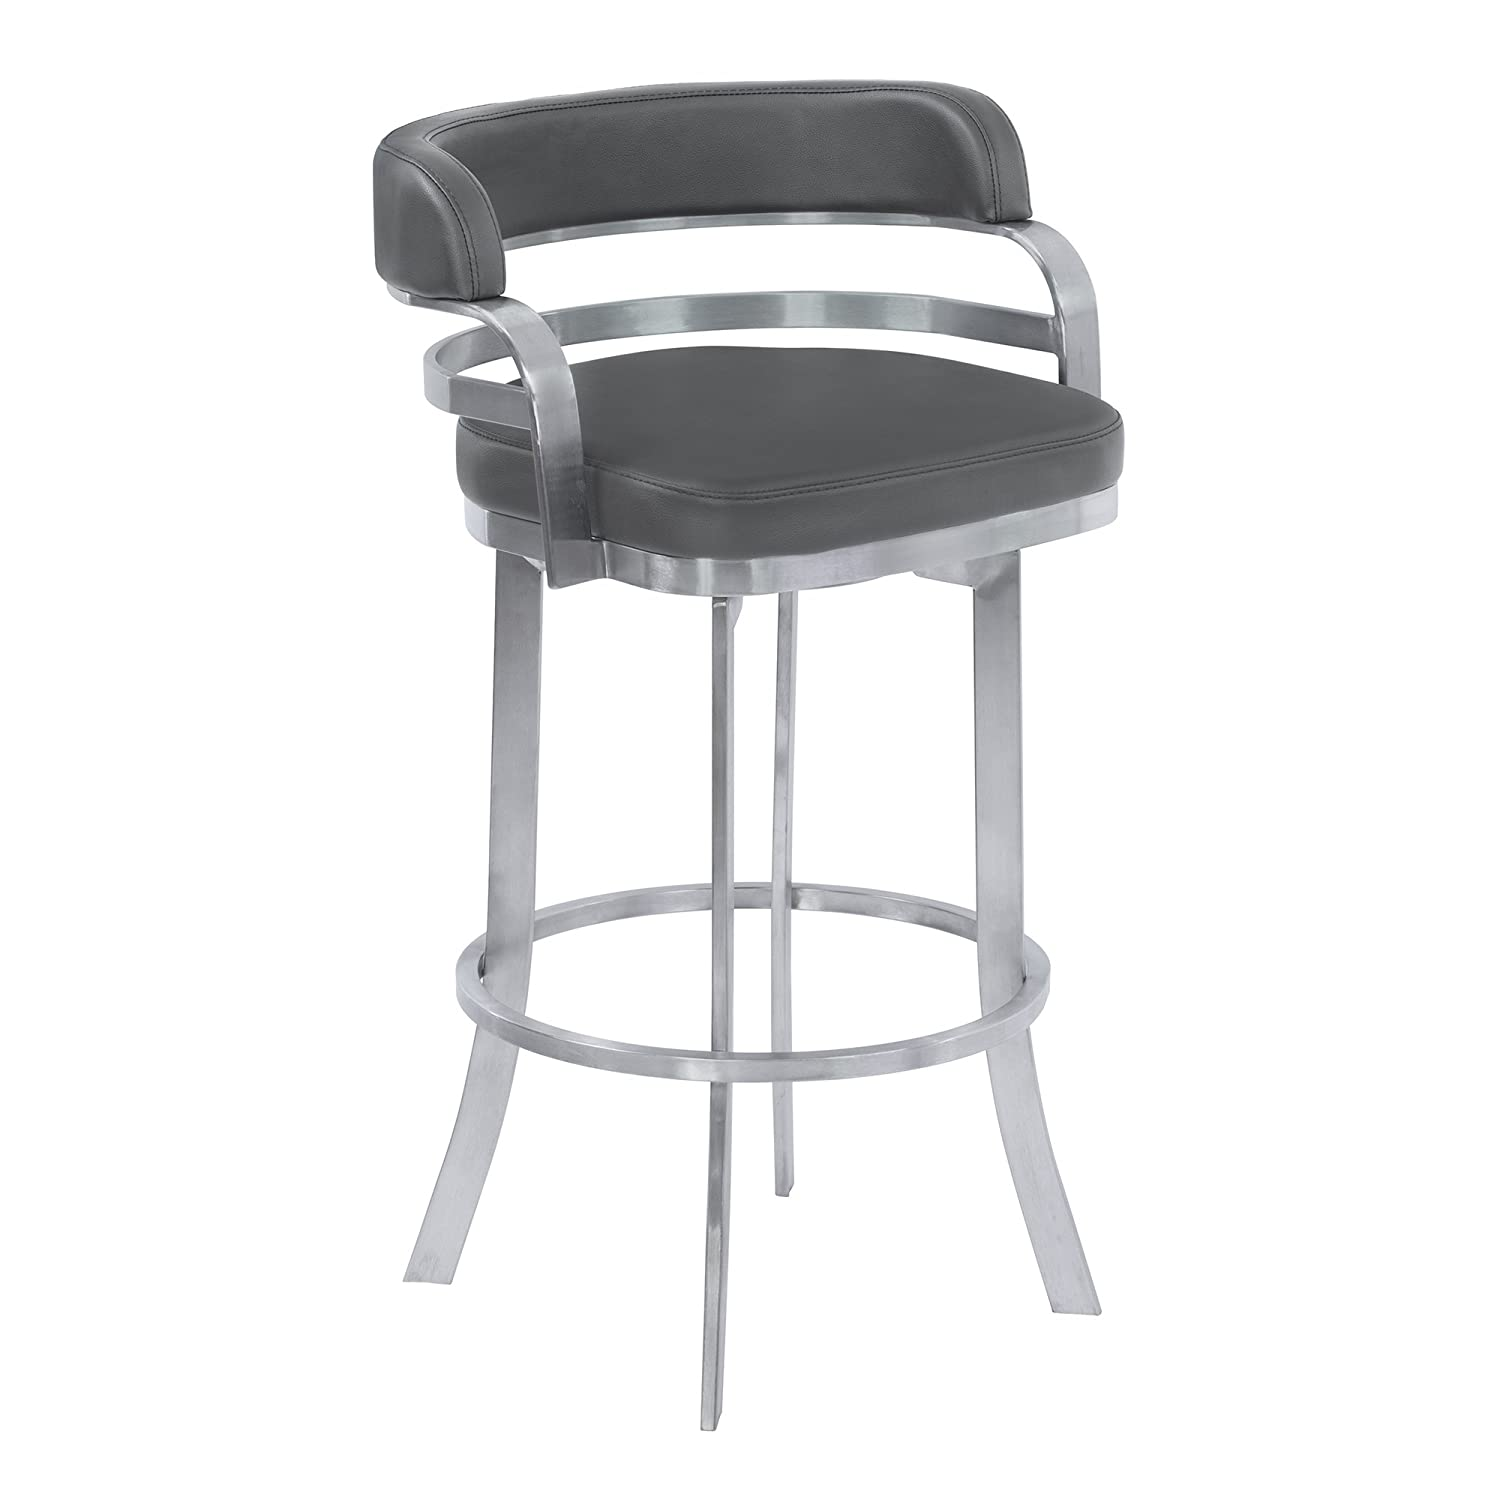 Armen Living Prinz 26 Counter Height Swivel Barstool in Grey Faux Leather and Brushed Stainless Steel Finish